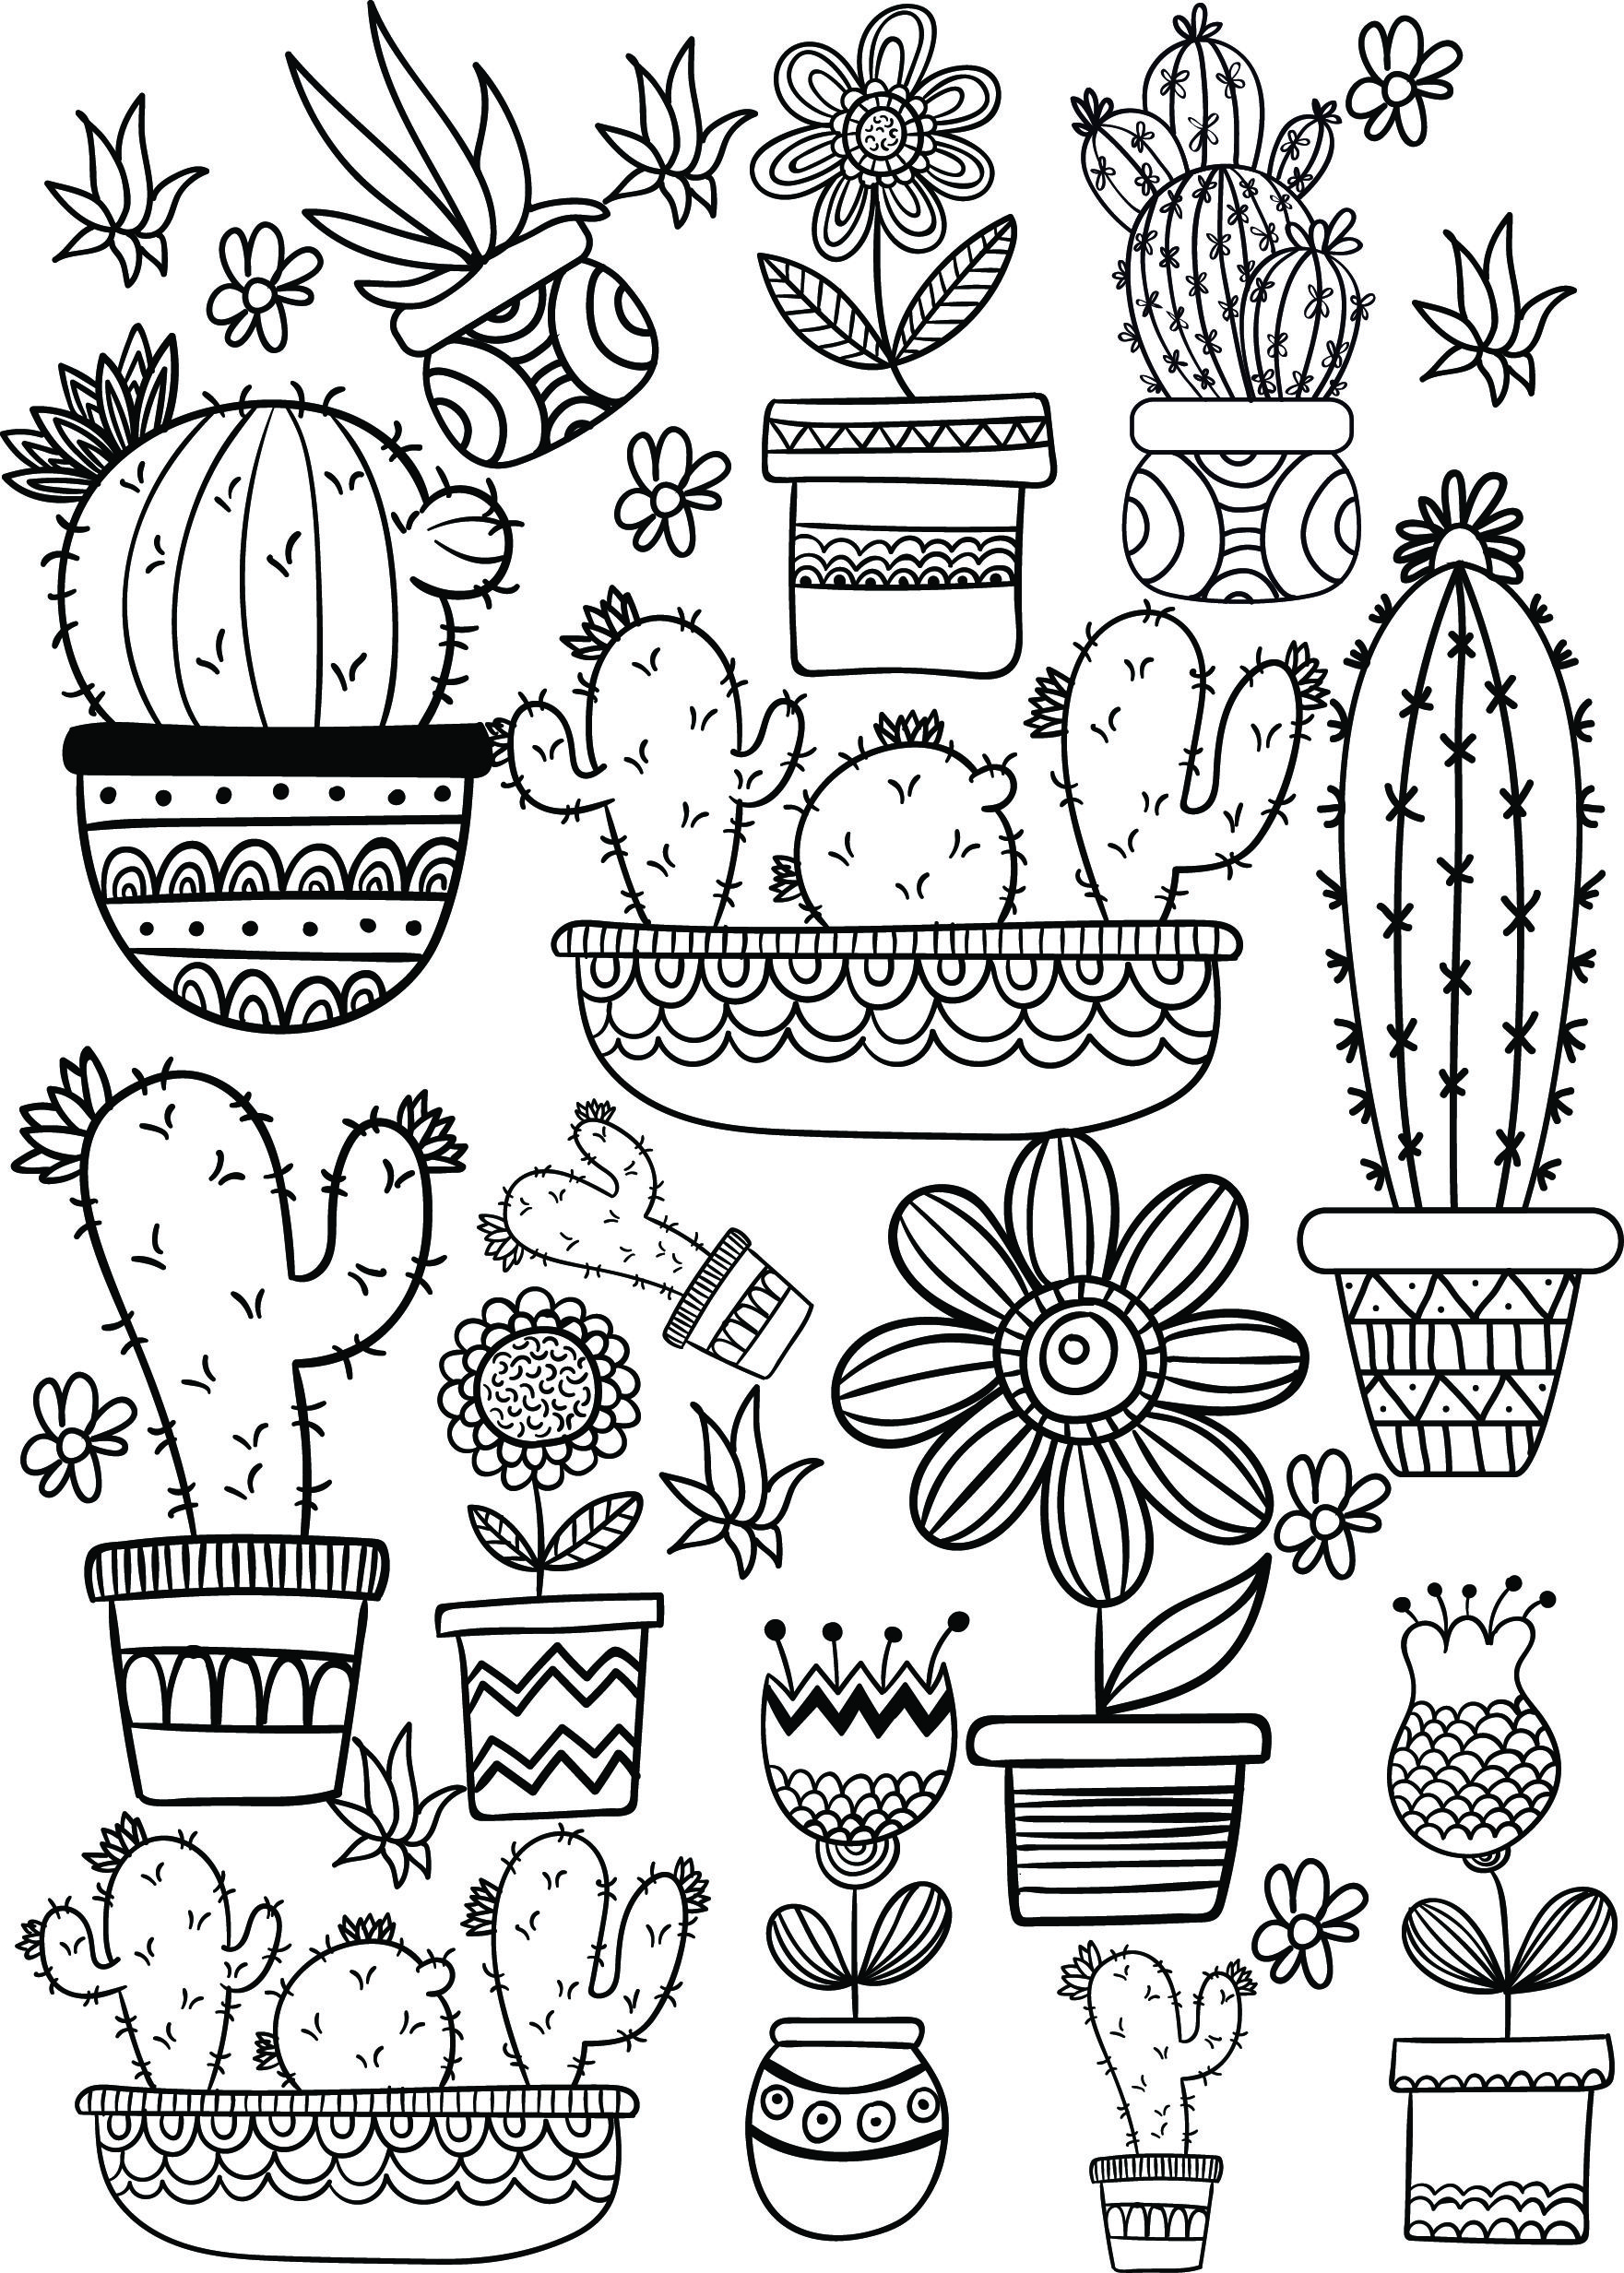 Pin On Patterns Coloring Pages And More [ 2465 x 1761 Pixel ]